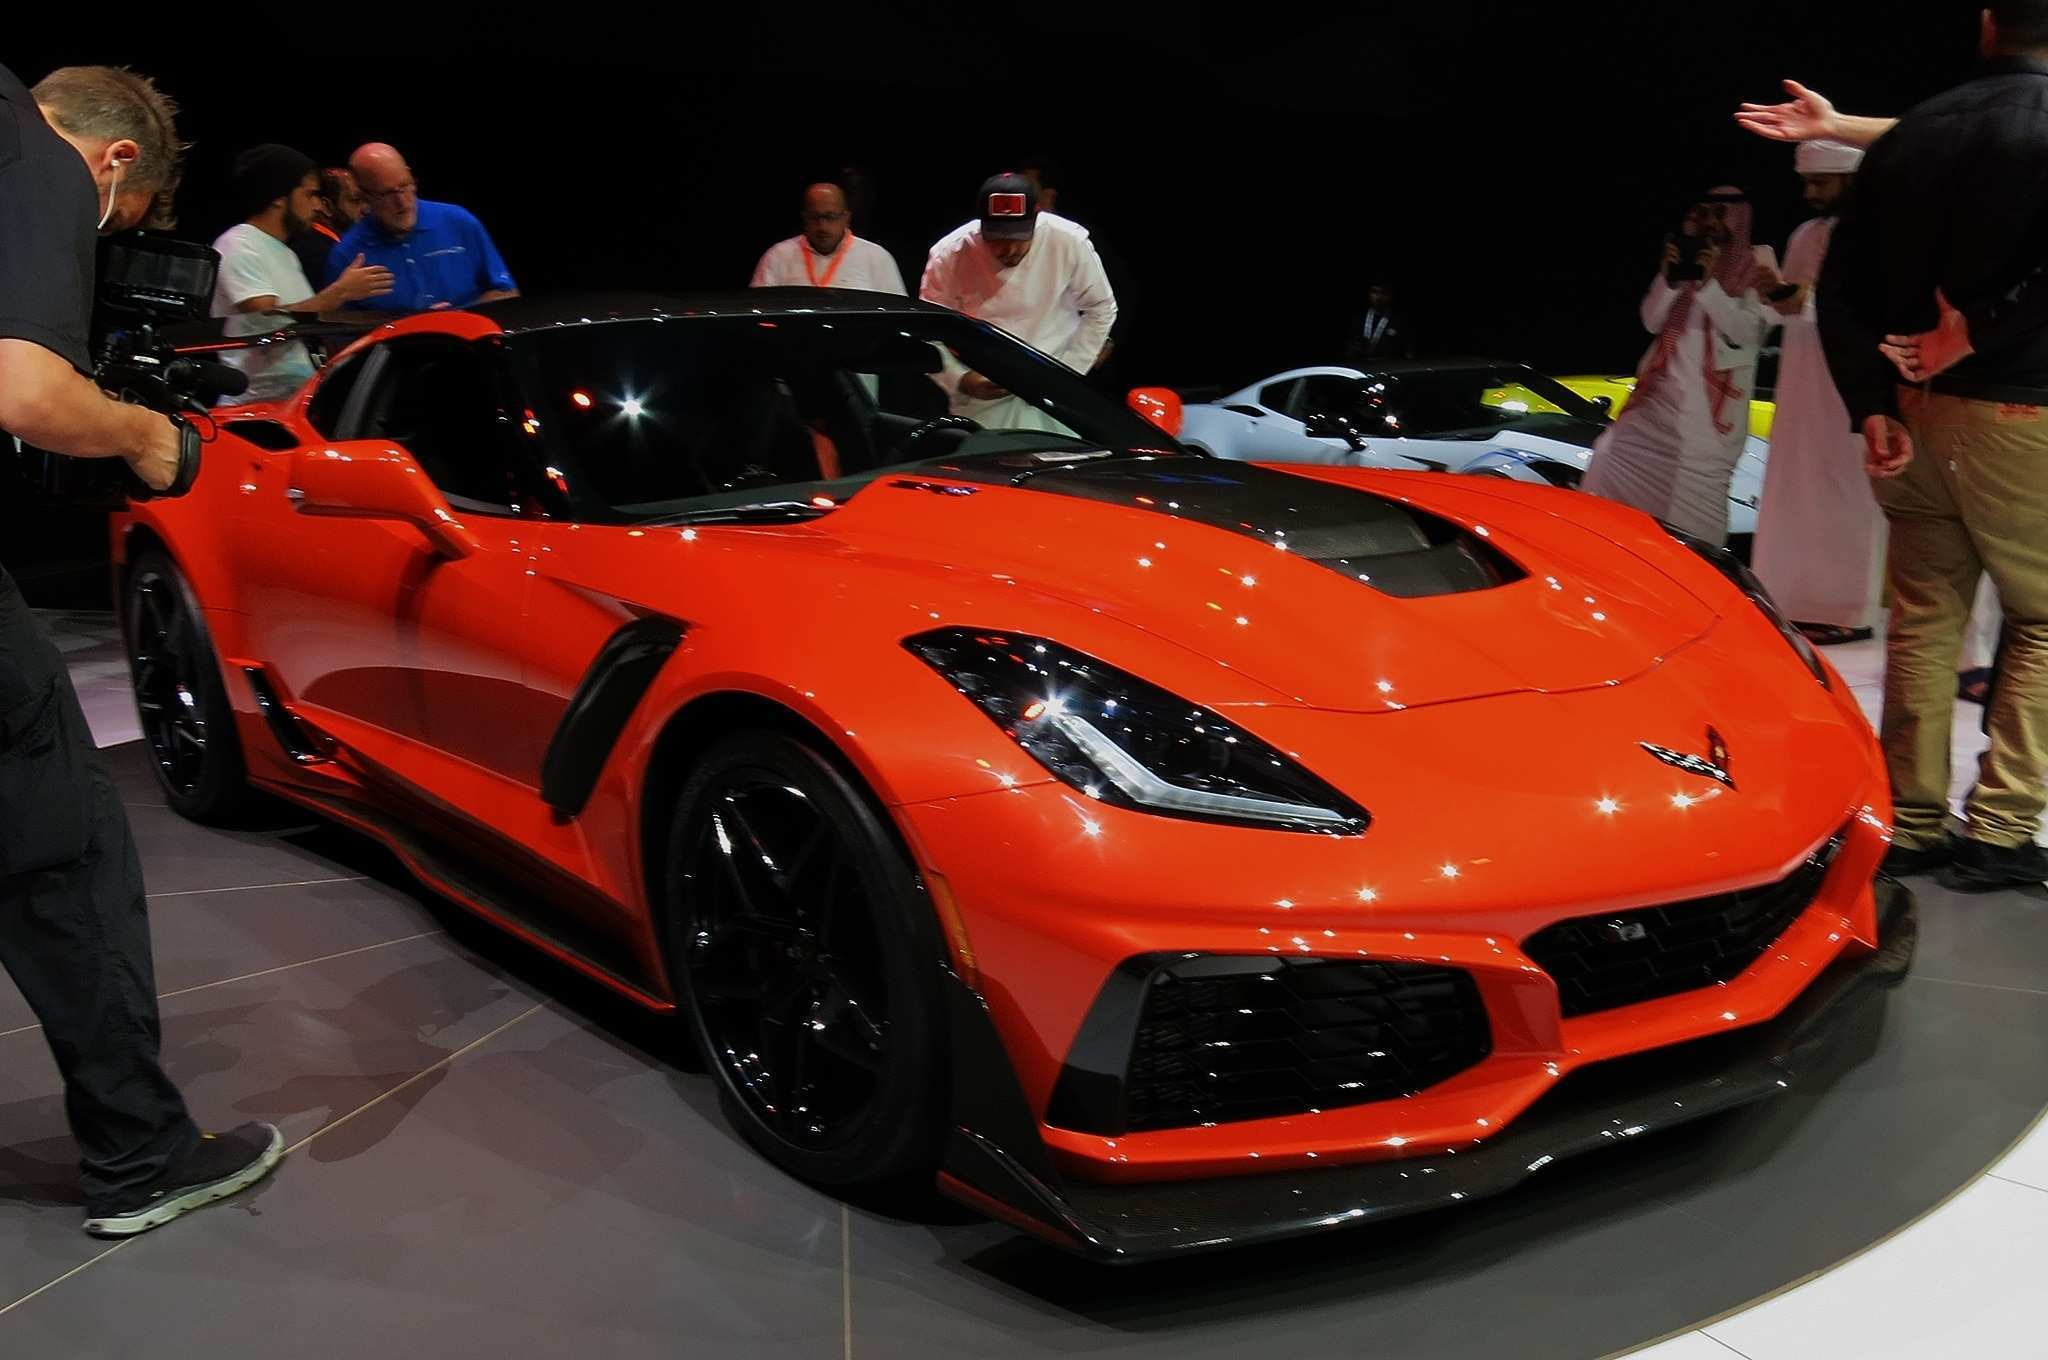 61 New New Chevrolet Corvette Zr1 2019 Spy Shoot Release Date for New Chevrolet Corvette Zr1 2019 Spy Shoot